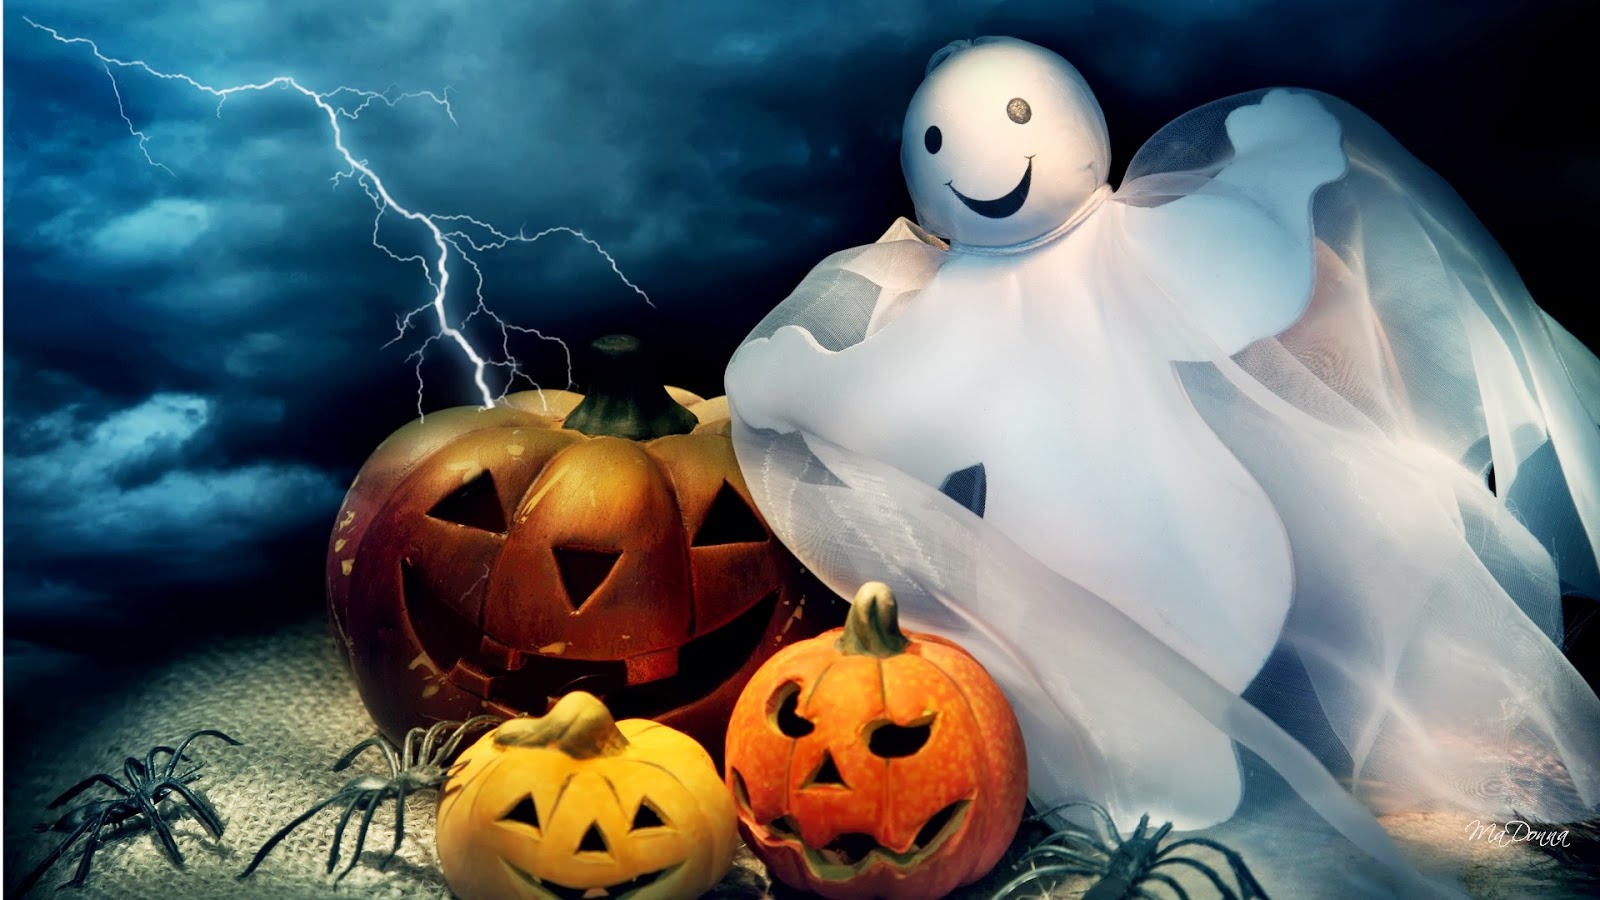 free halloween desktop wallpaper   Video Search Engine at 1600x900